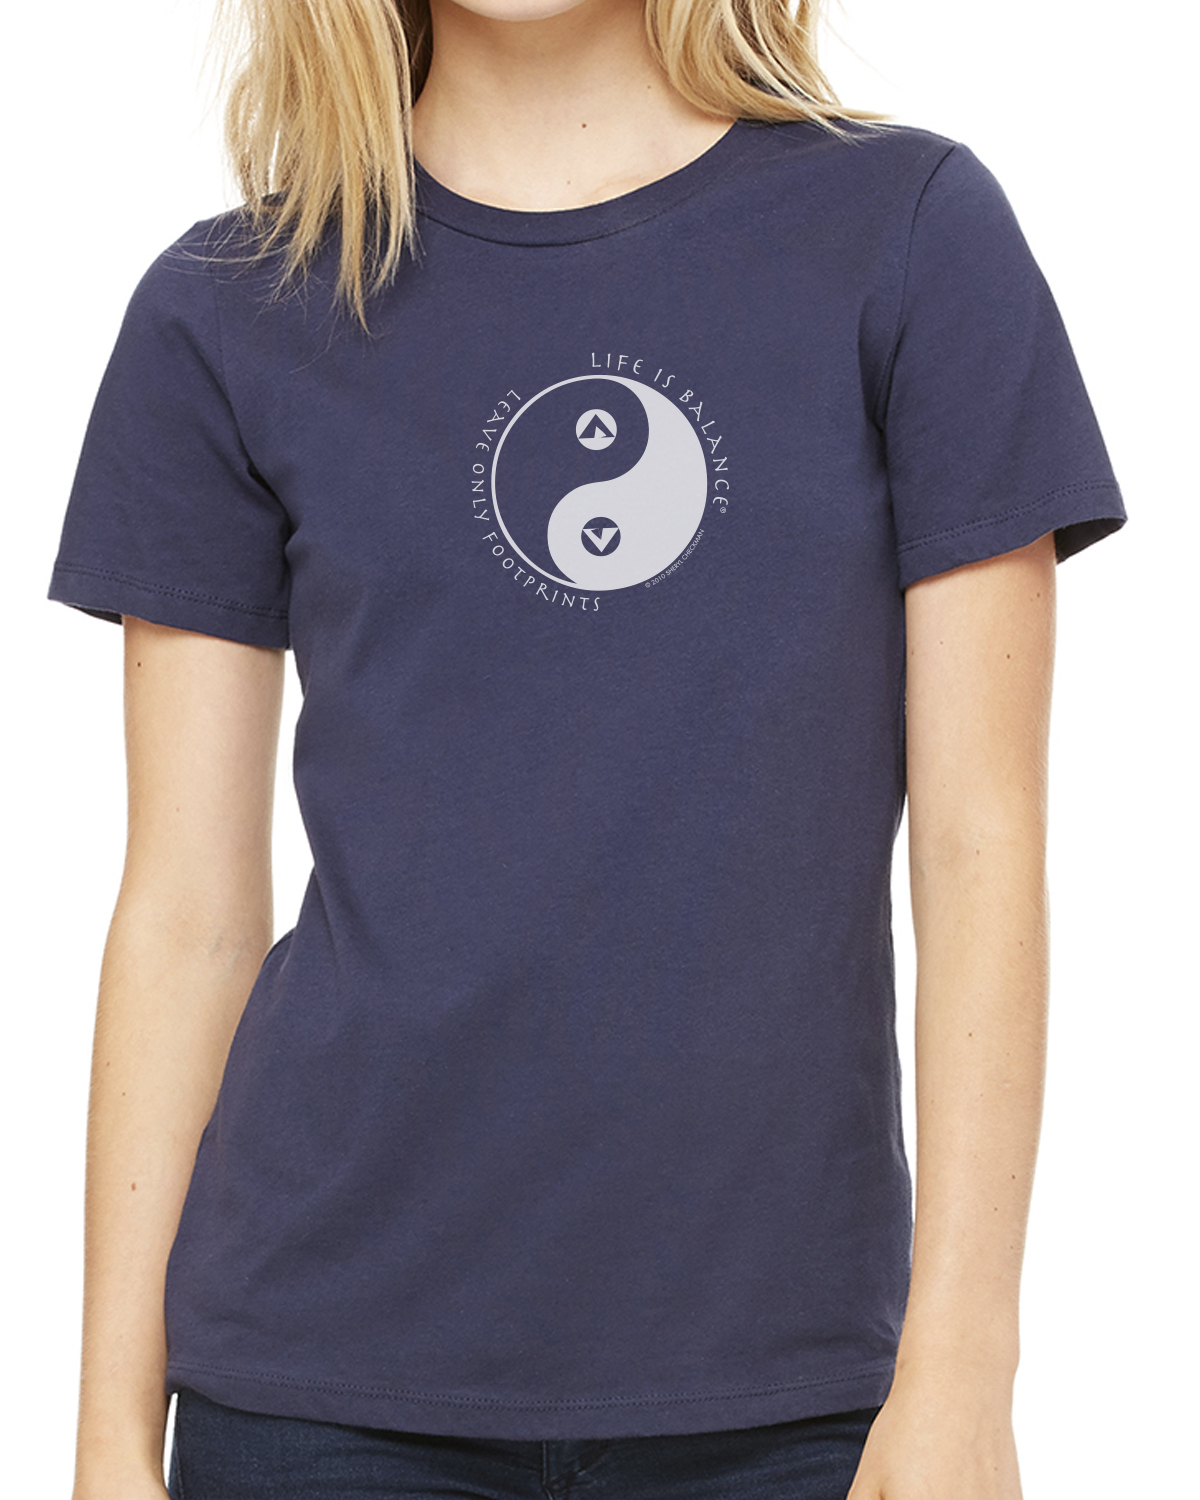 Women's short-sleeve camping t-shirt (Navy)